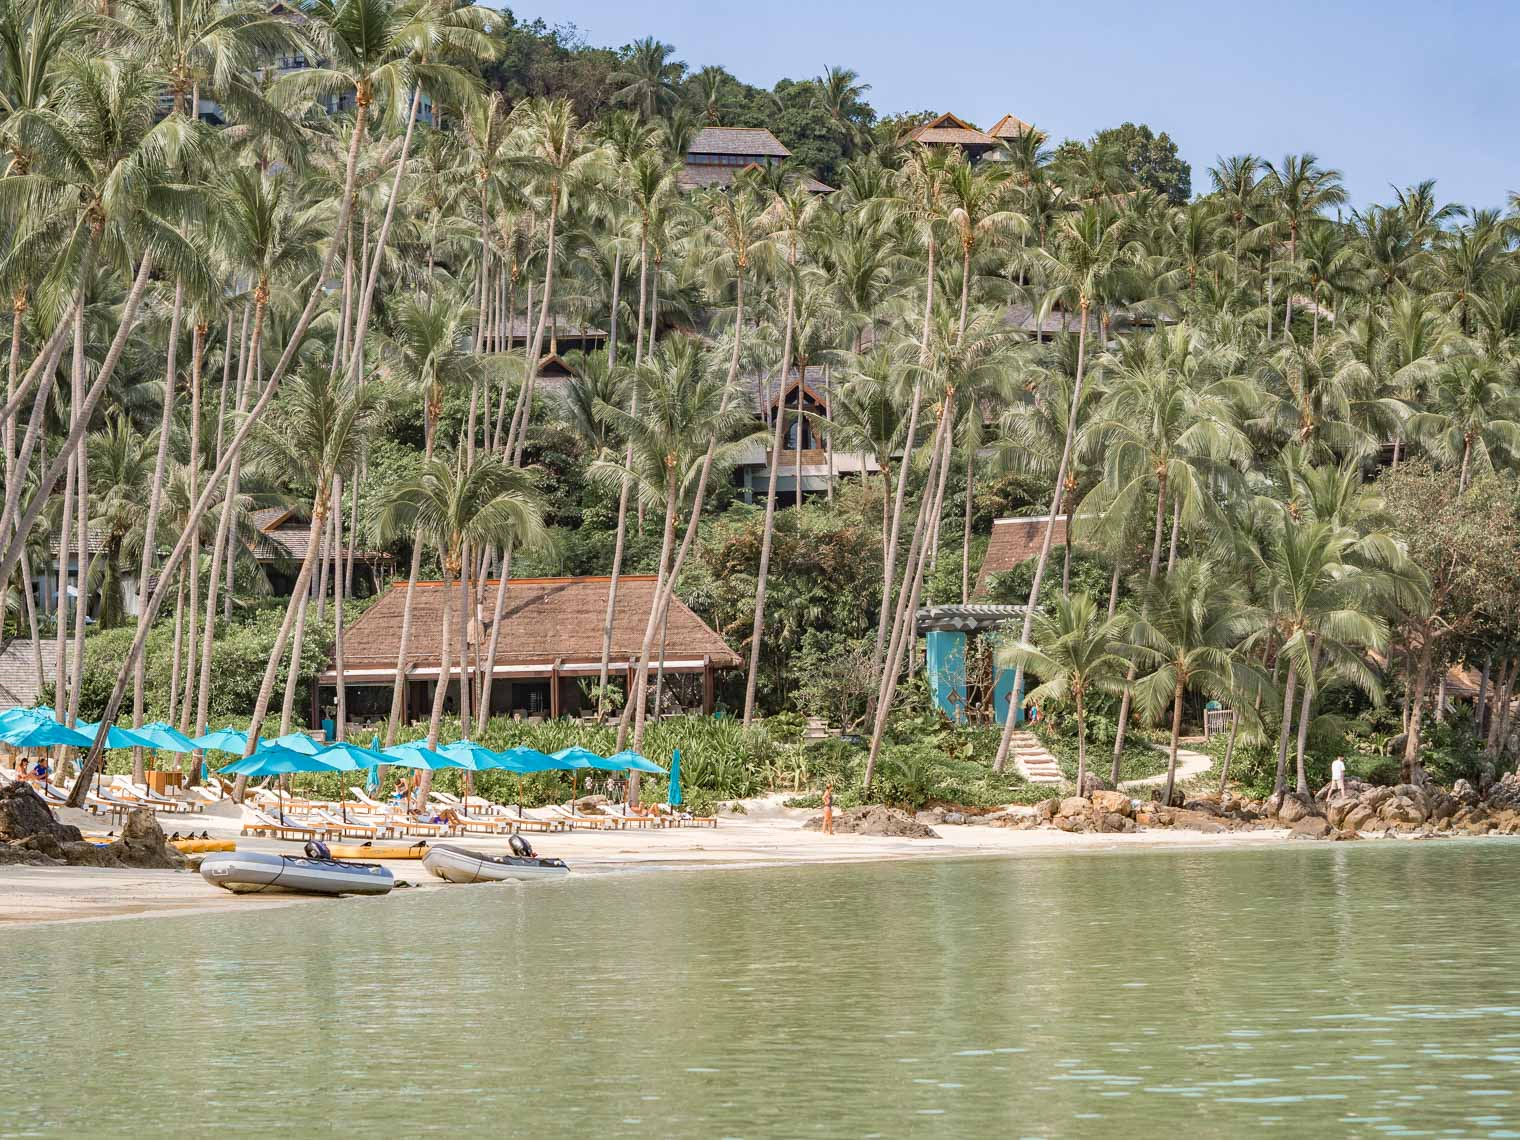 Private beach at Four Seasons hotel Koh Samui Thailand